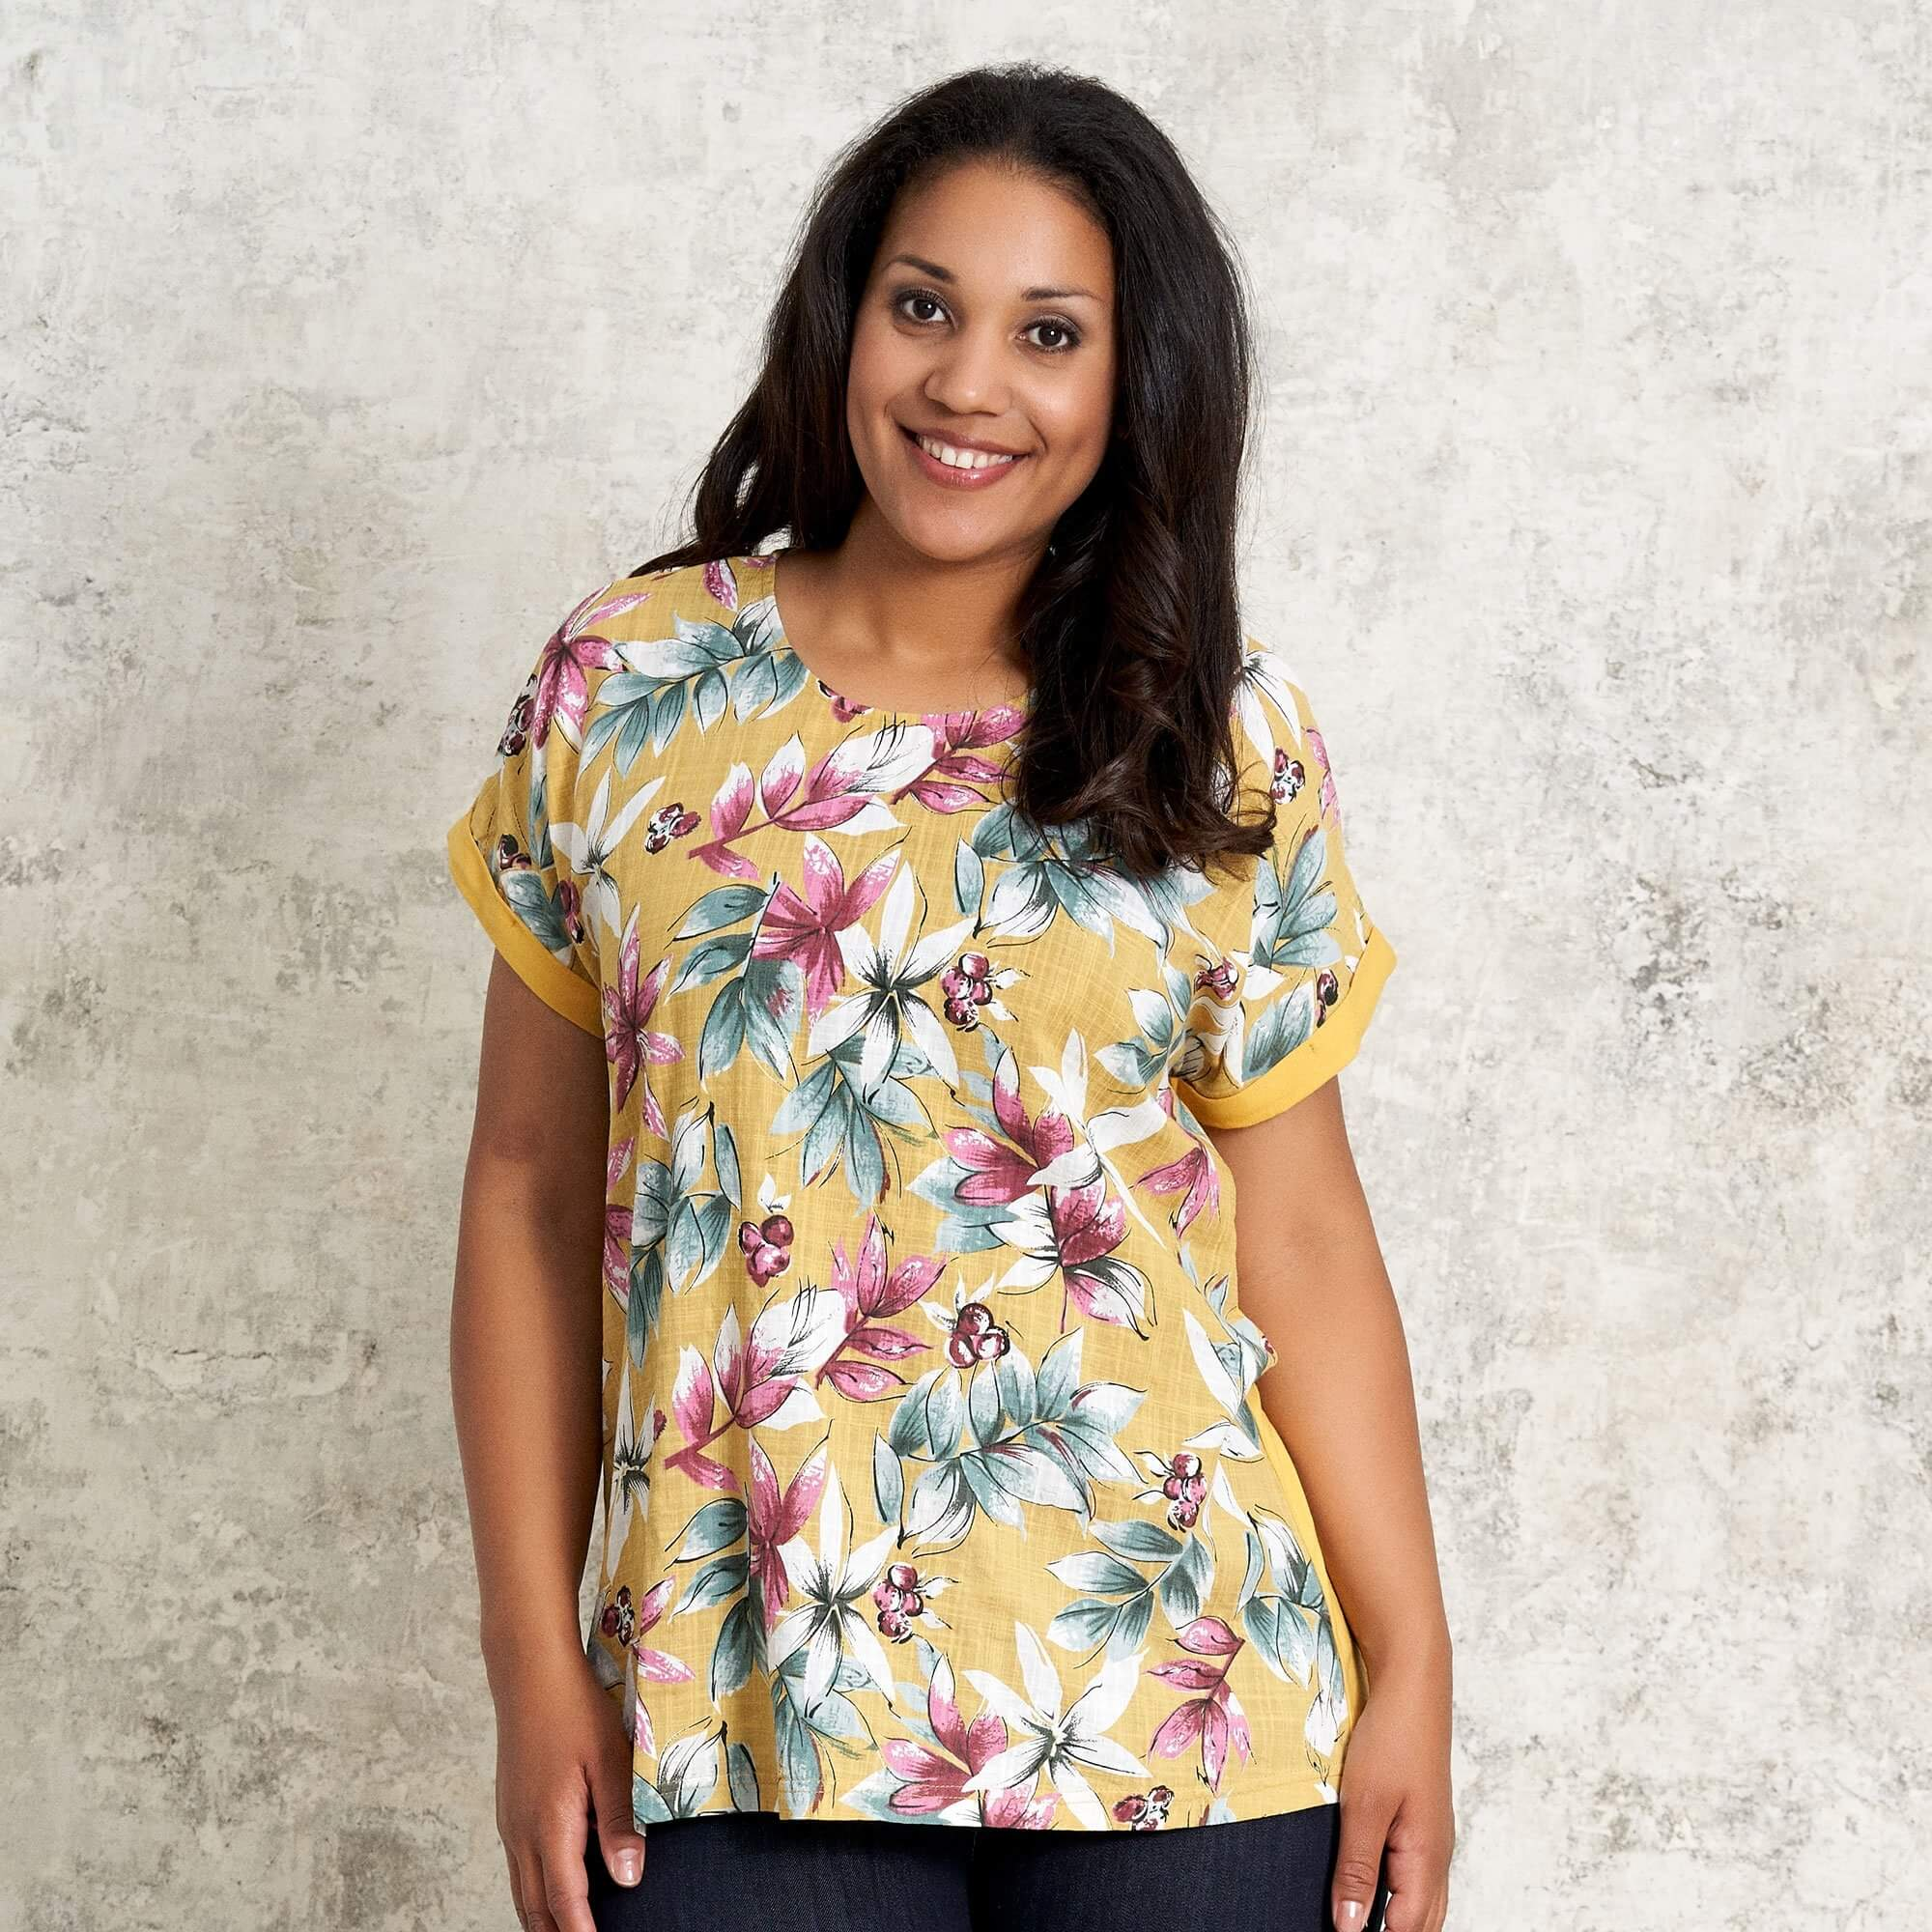 Gul t-shirt med blomsterprint